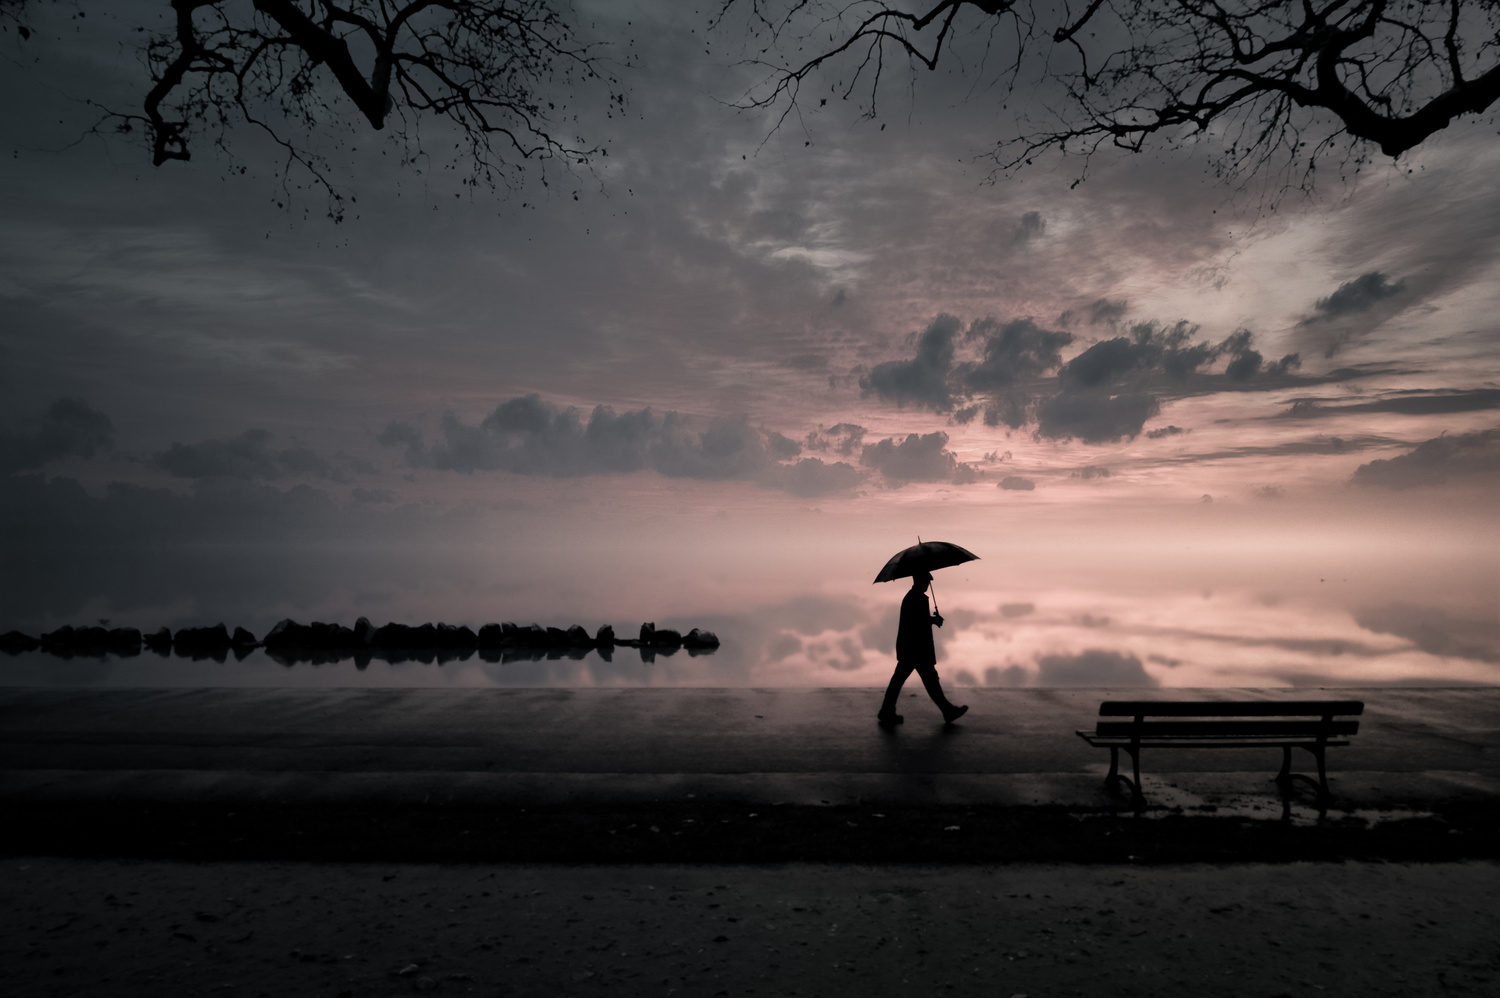 Raining days by Miguel Martins